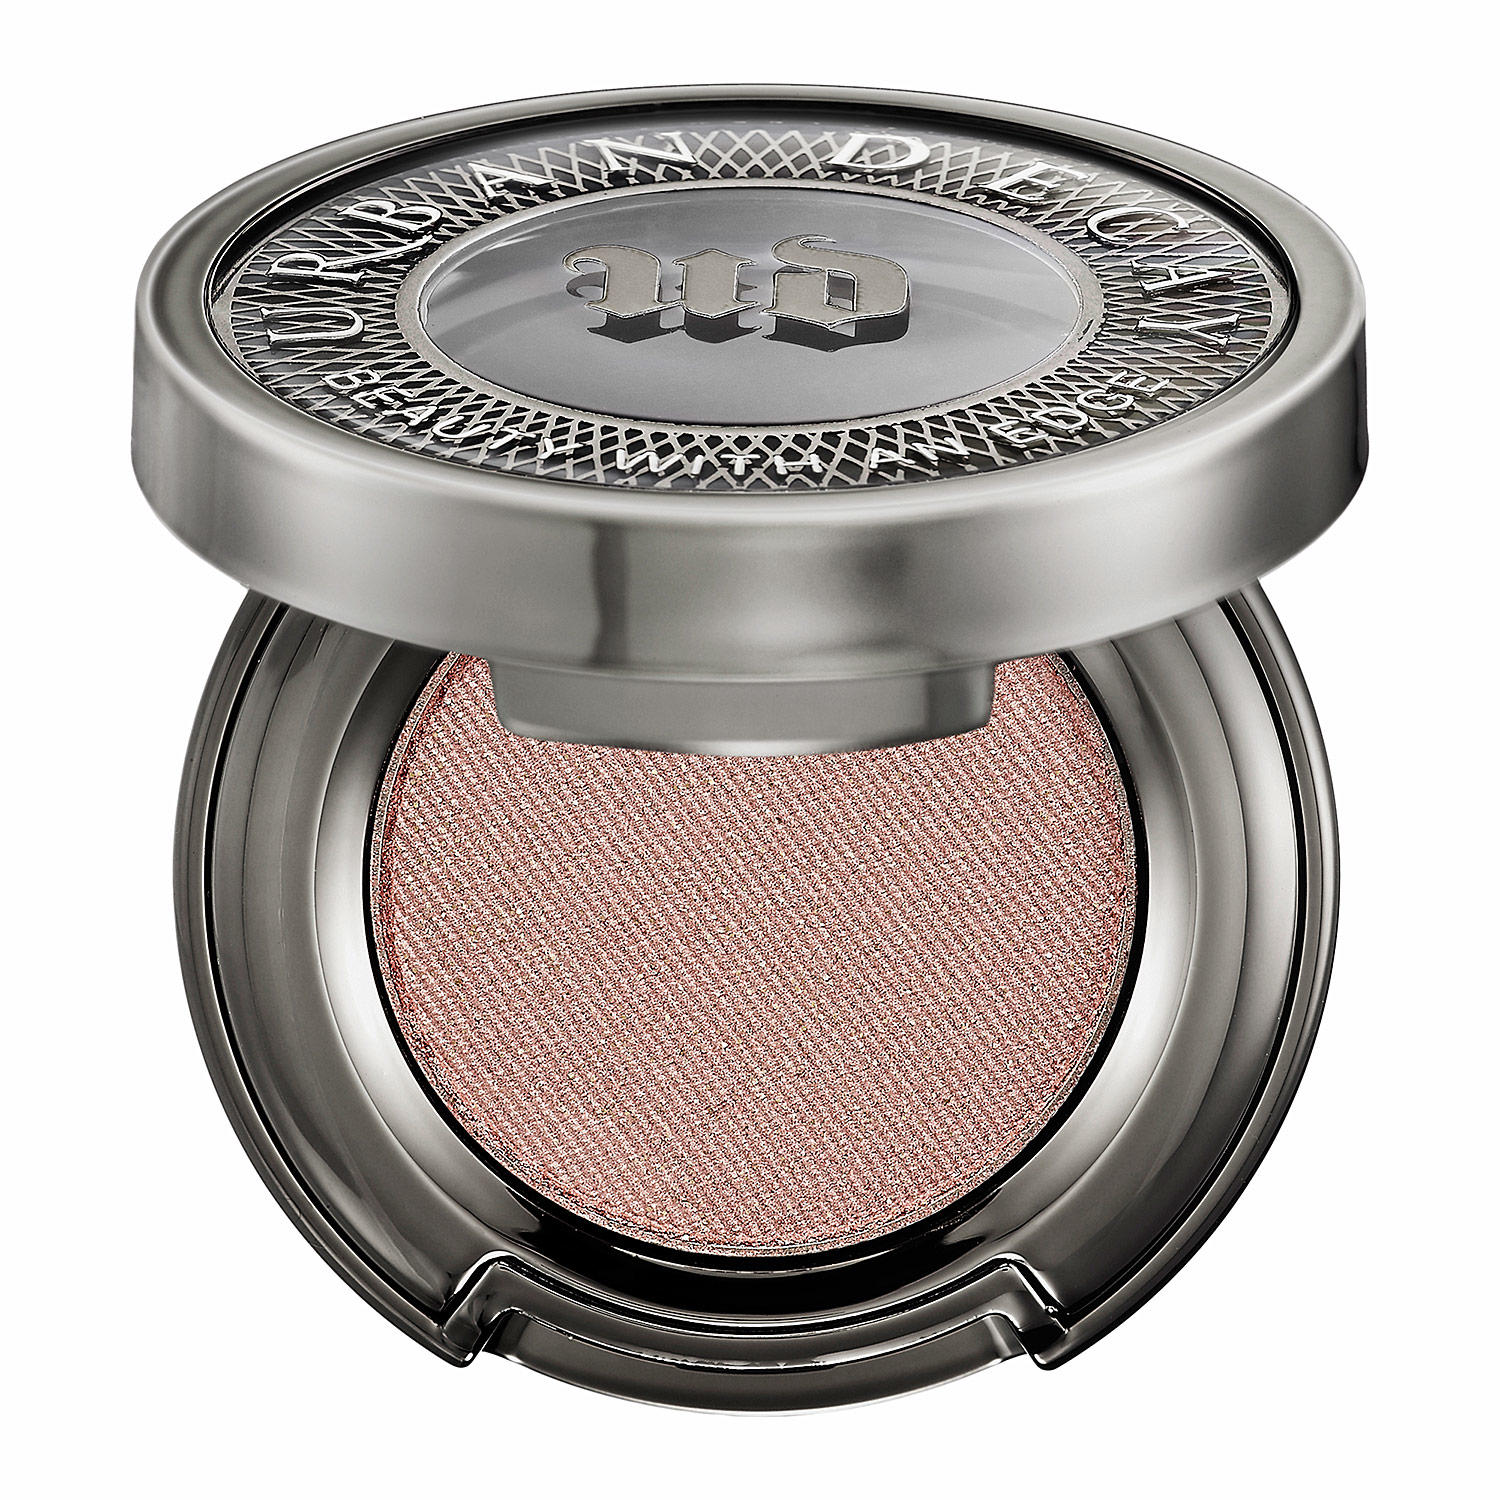 Urban Decay Eyeshadow Chopper